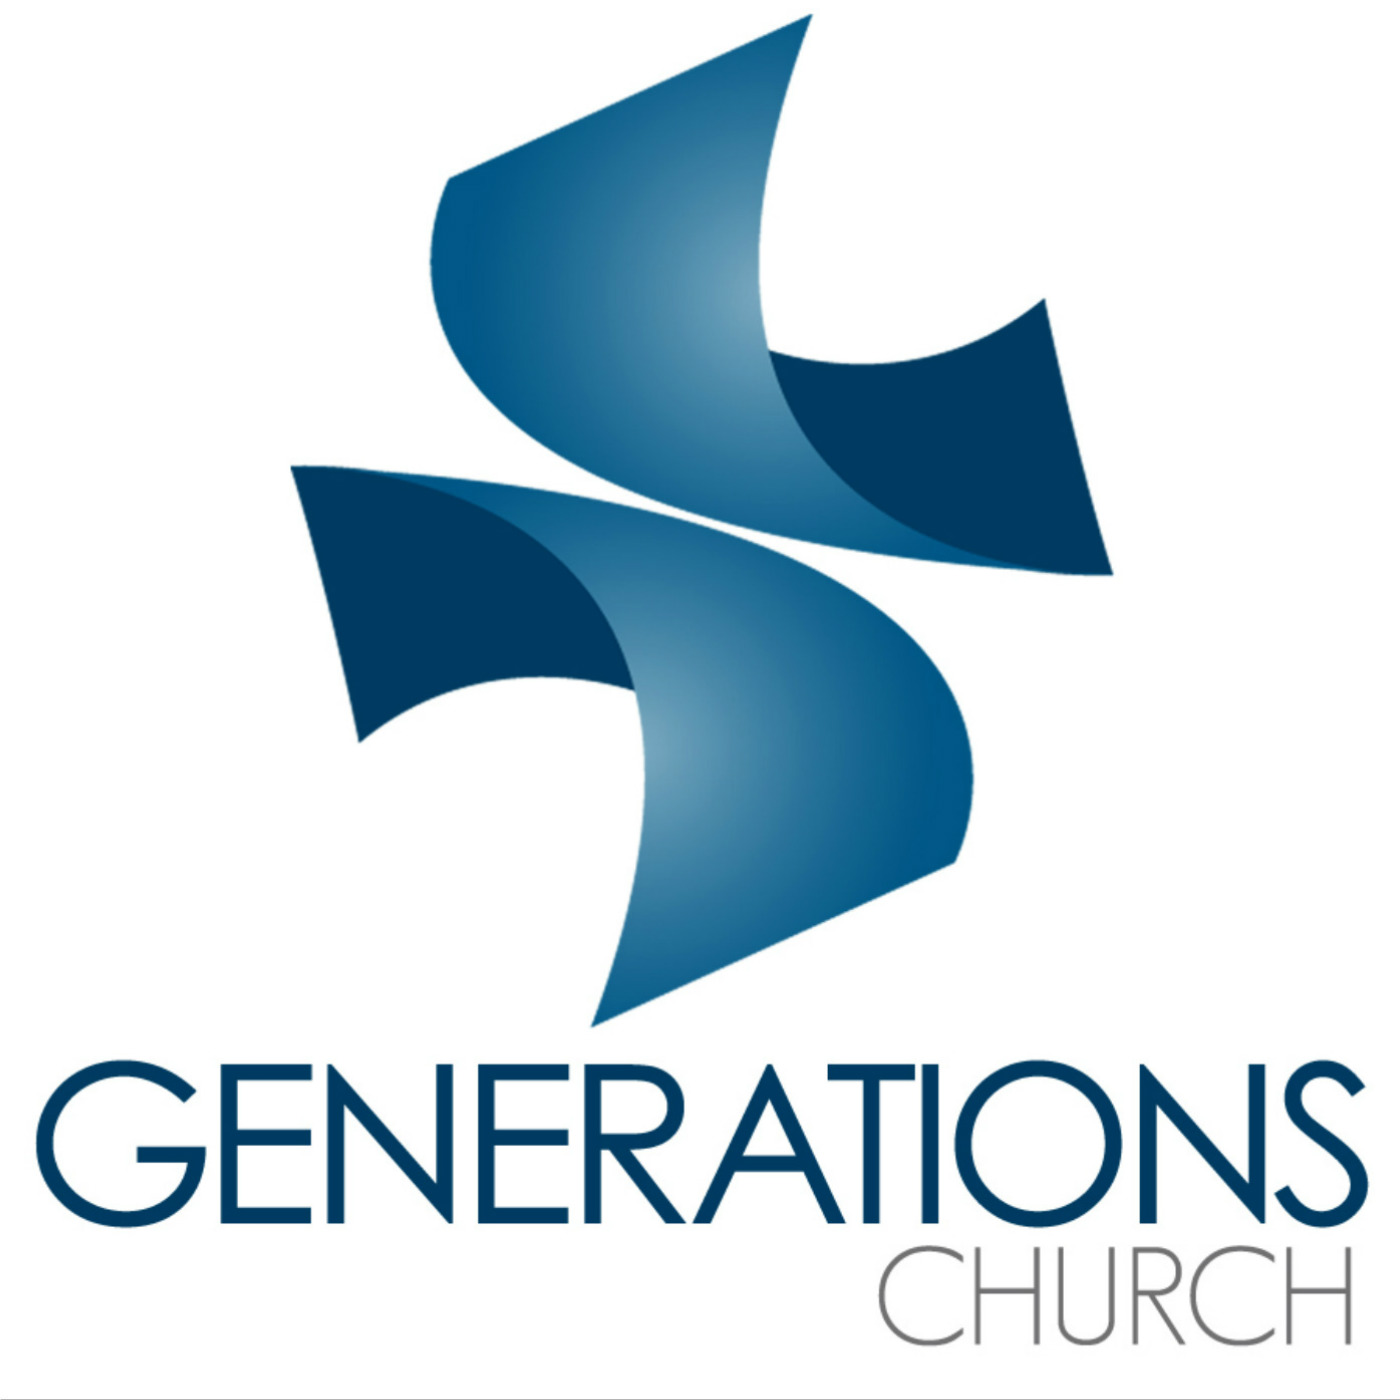 Generations Church of Spring TX